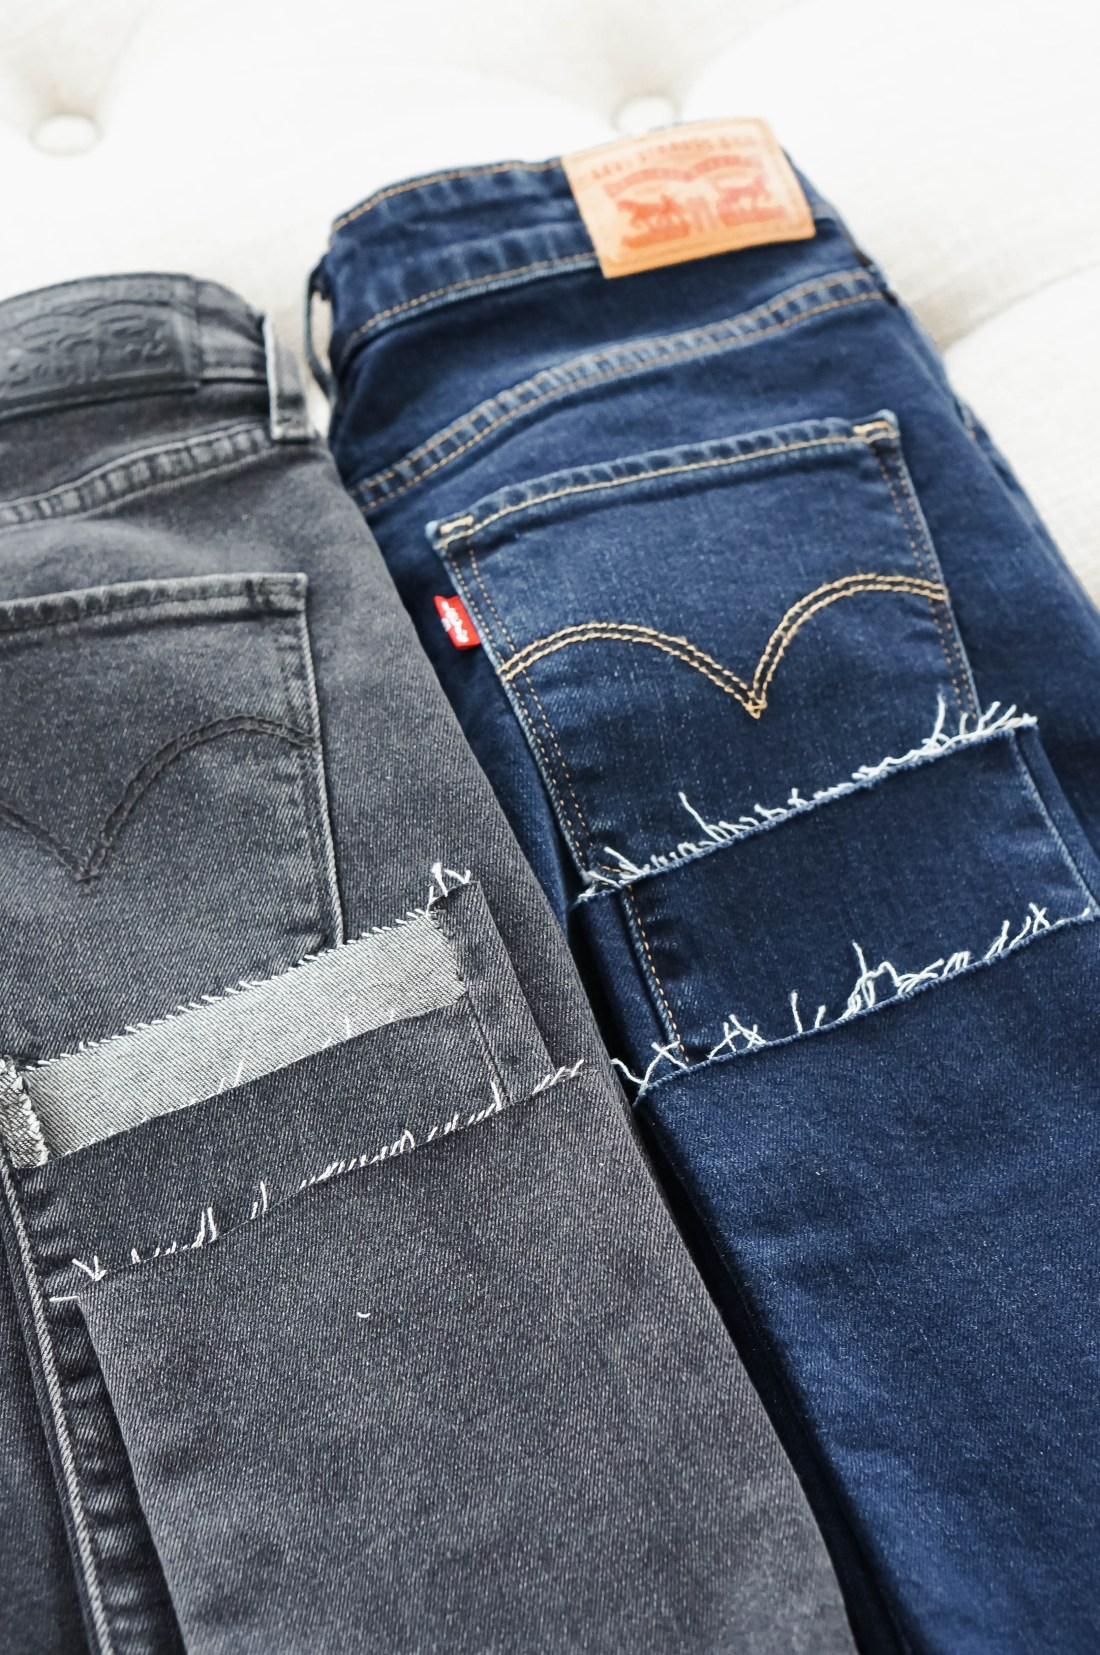 how to cut your jeans